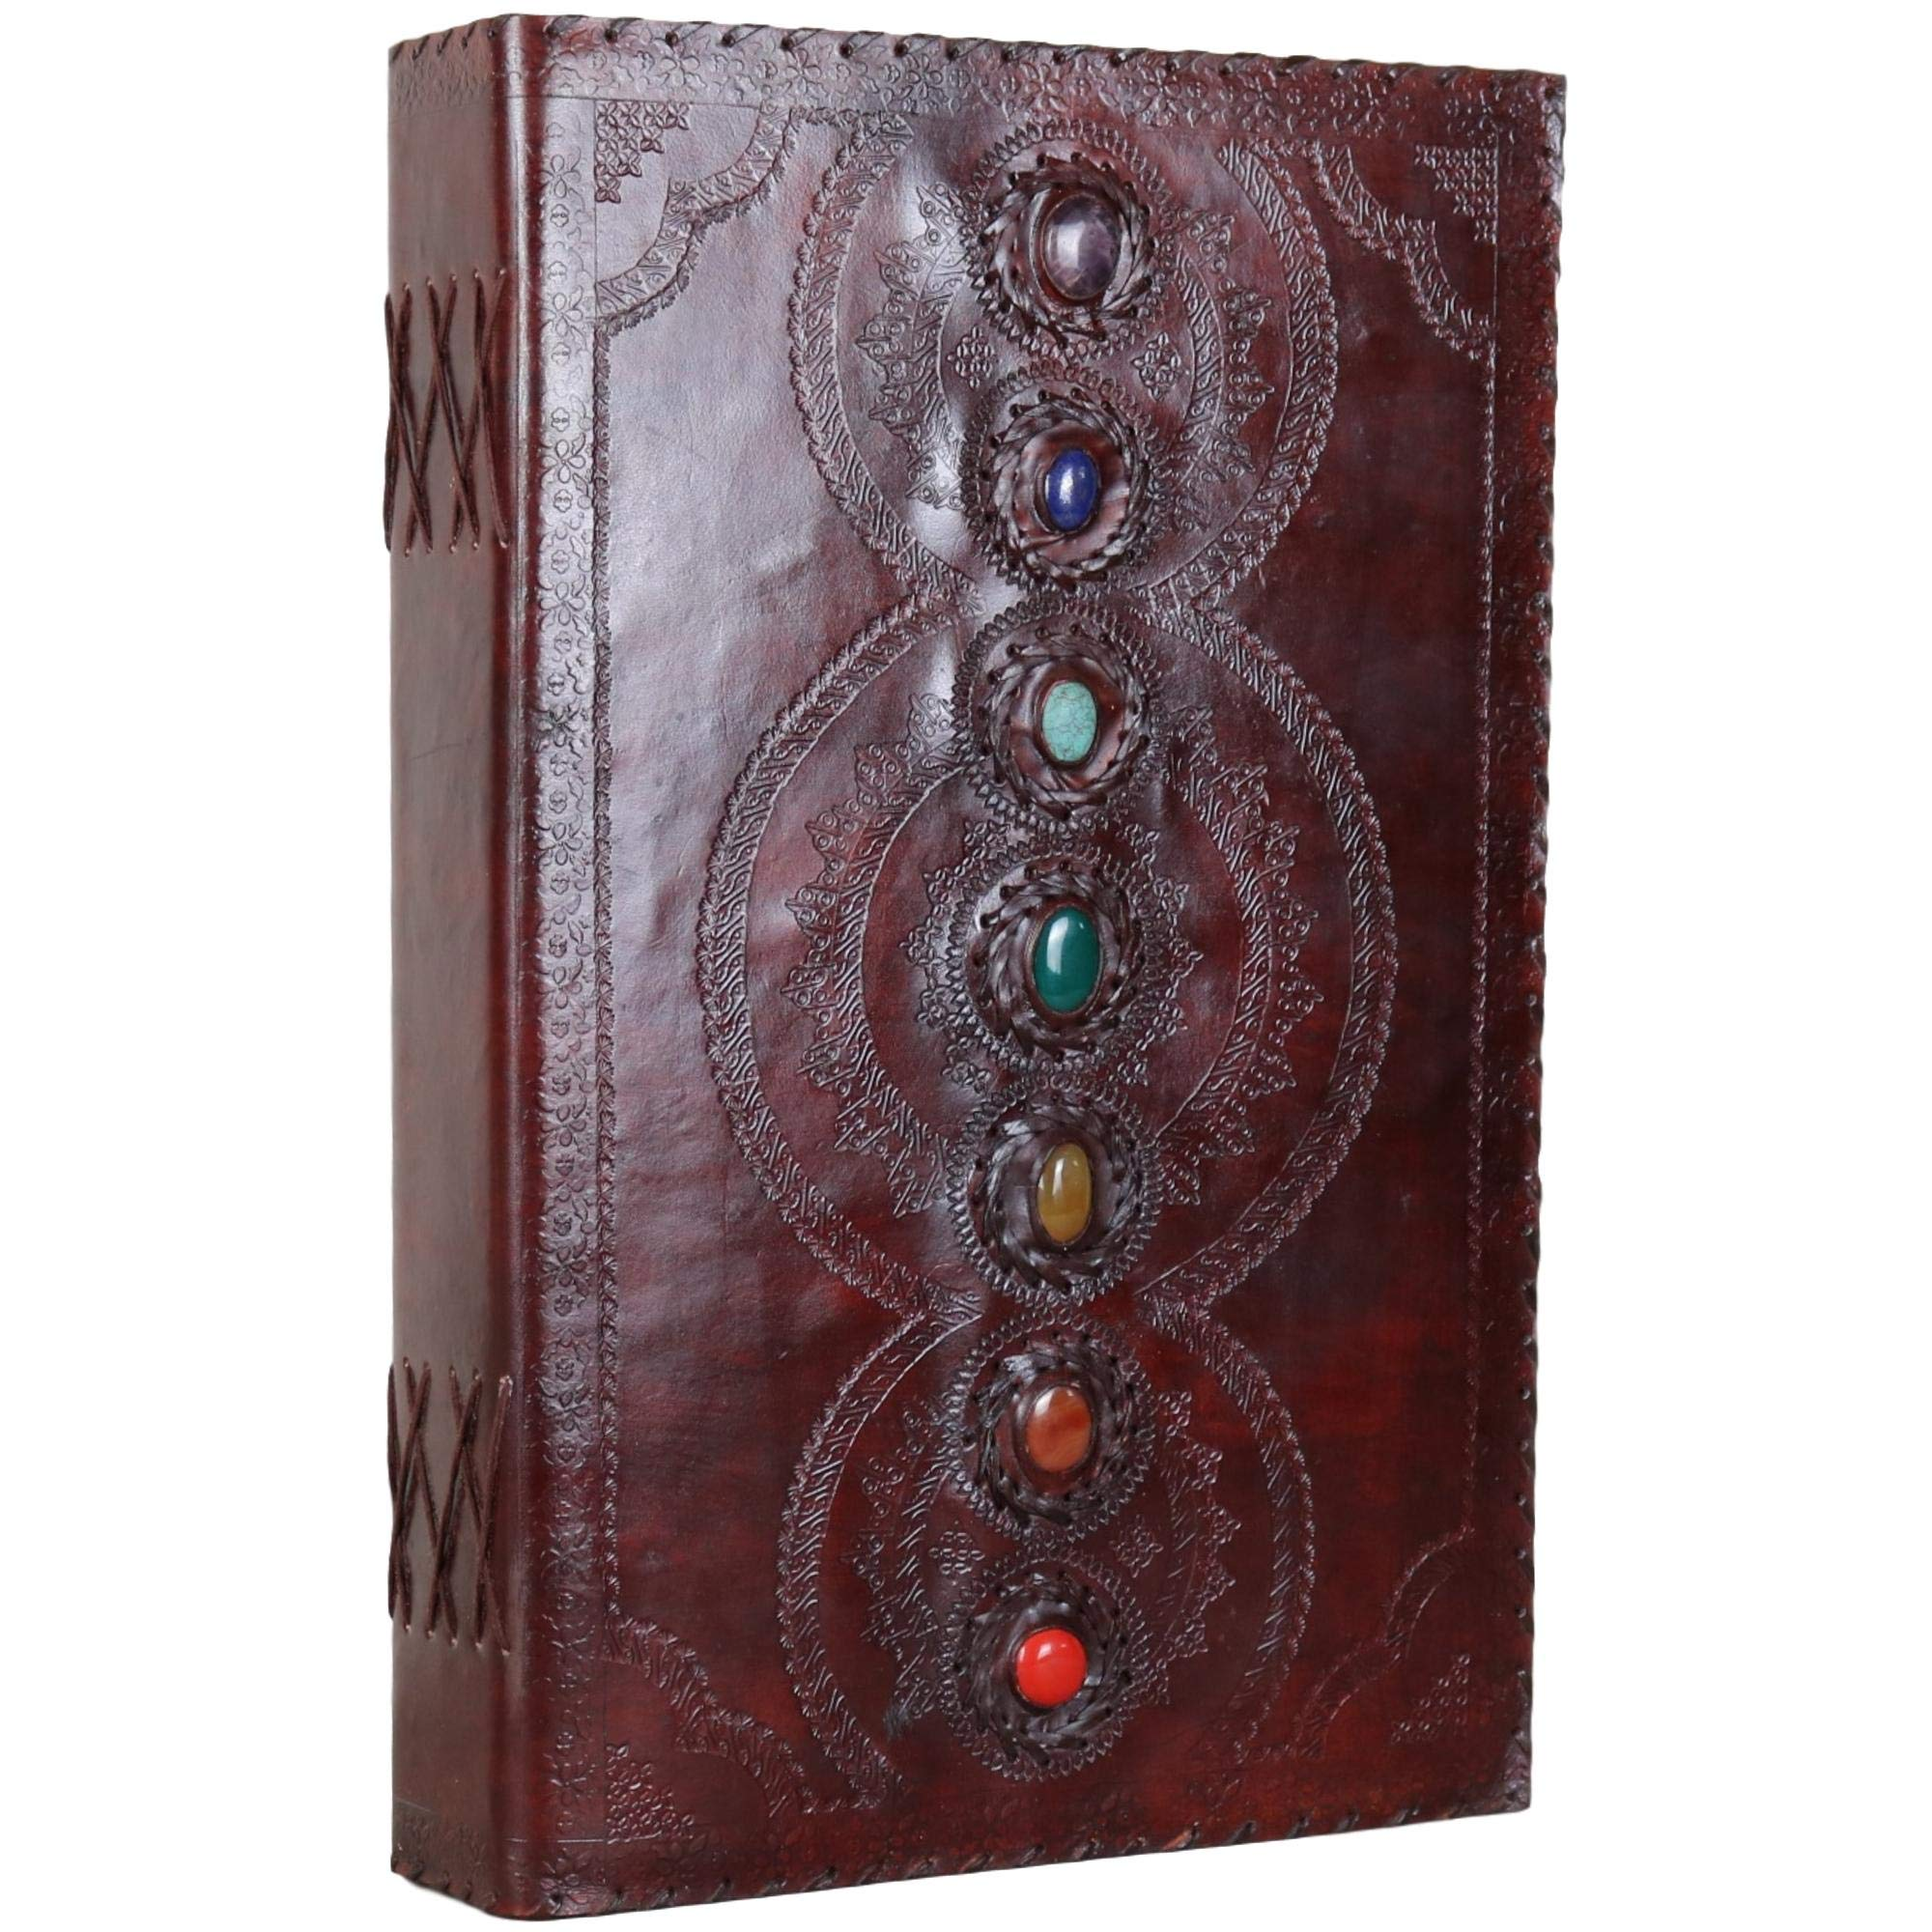 Seven Stone Leather Journal Handmade Notebook Unlined Blank 600 Pages 13 1/2 X 22 inches by  (Image #1)